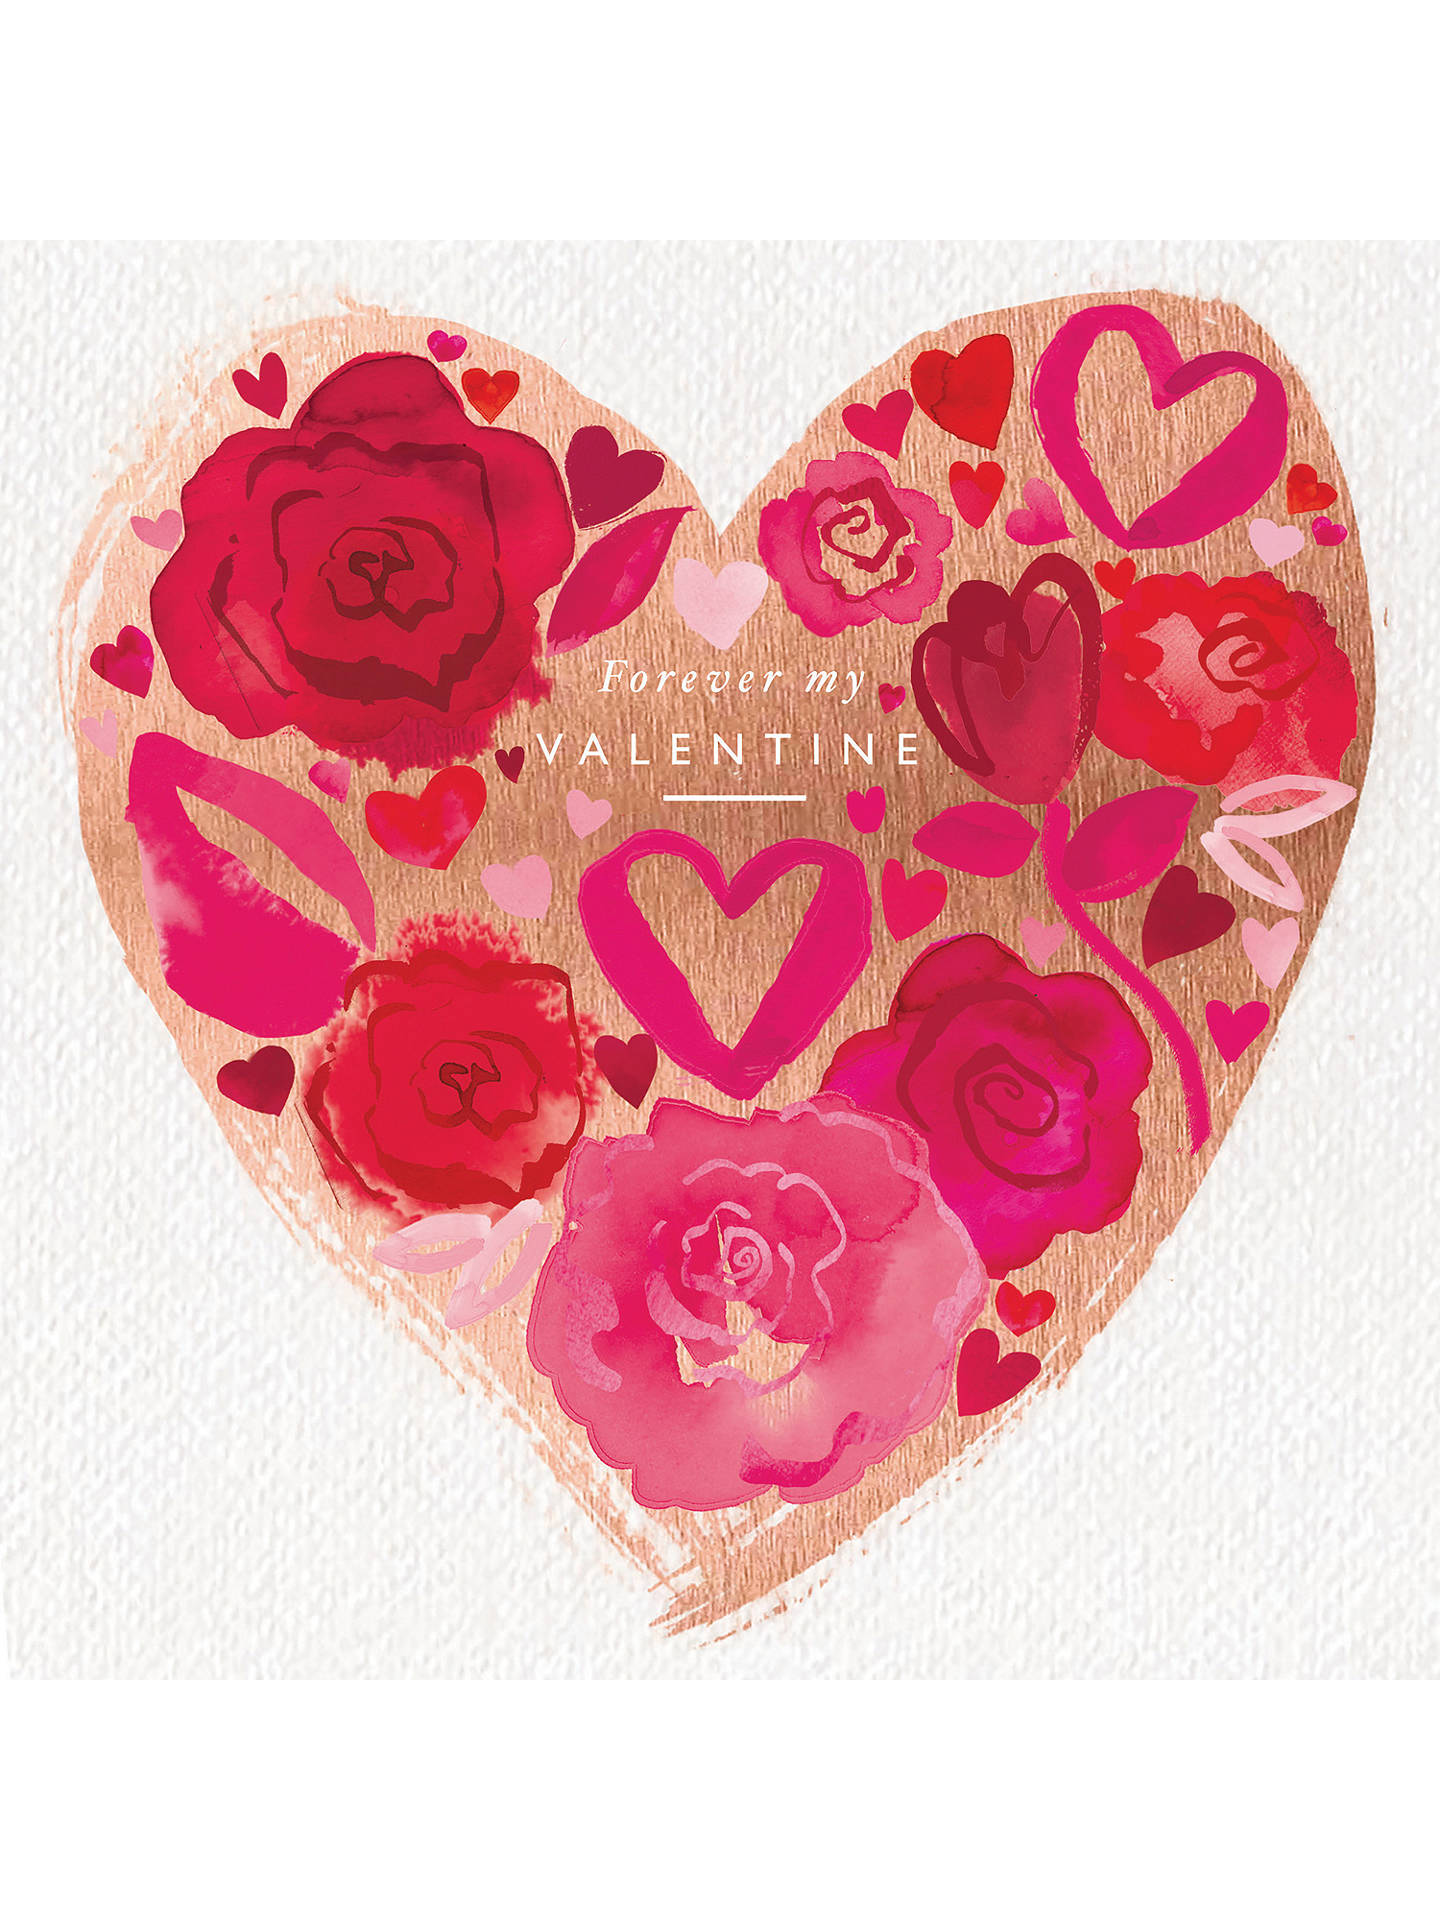 BuyWoodmansterne Forever My Valentines Day Card Online At Johnlewis